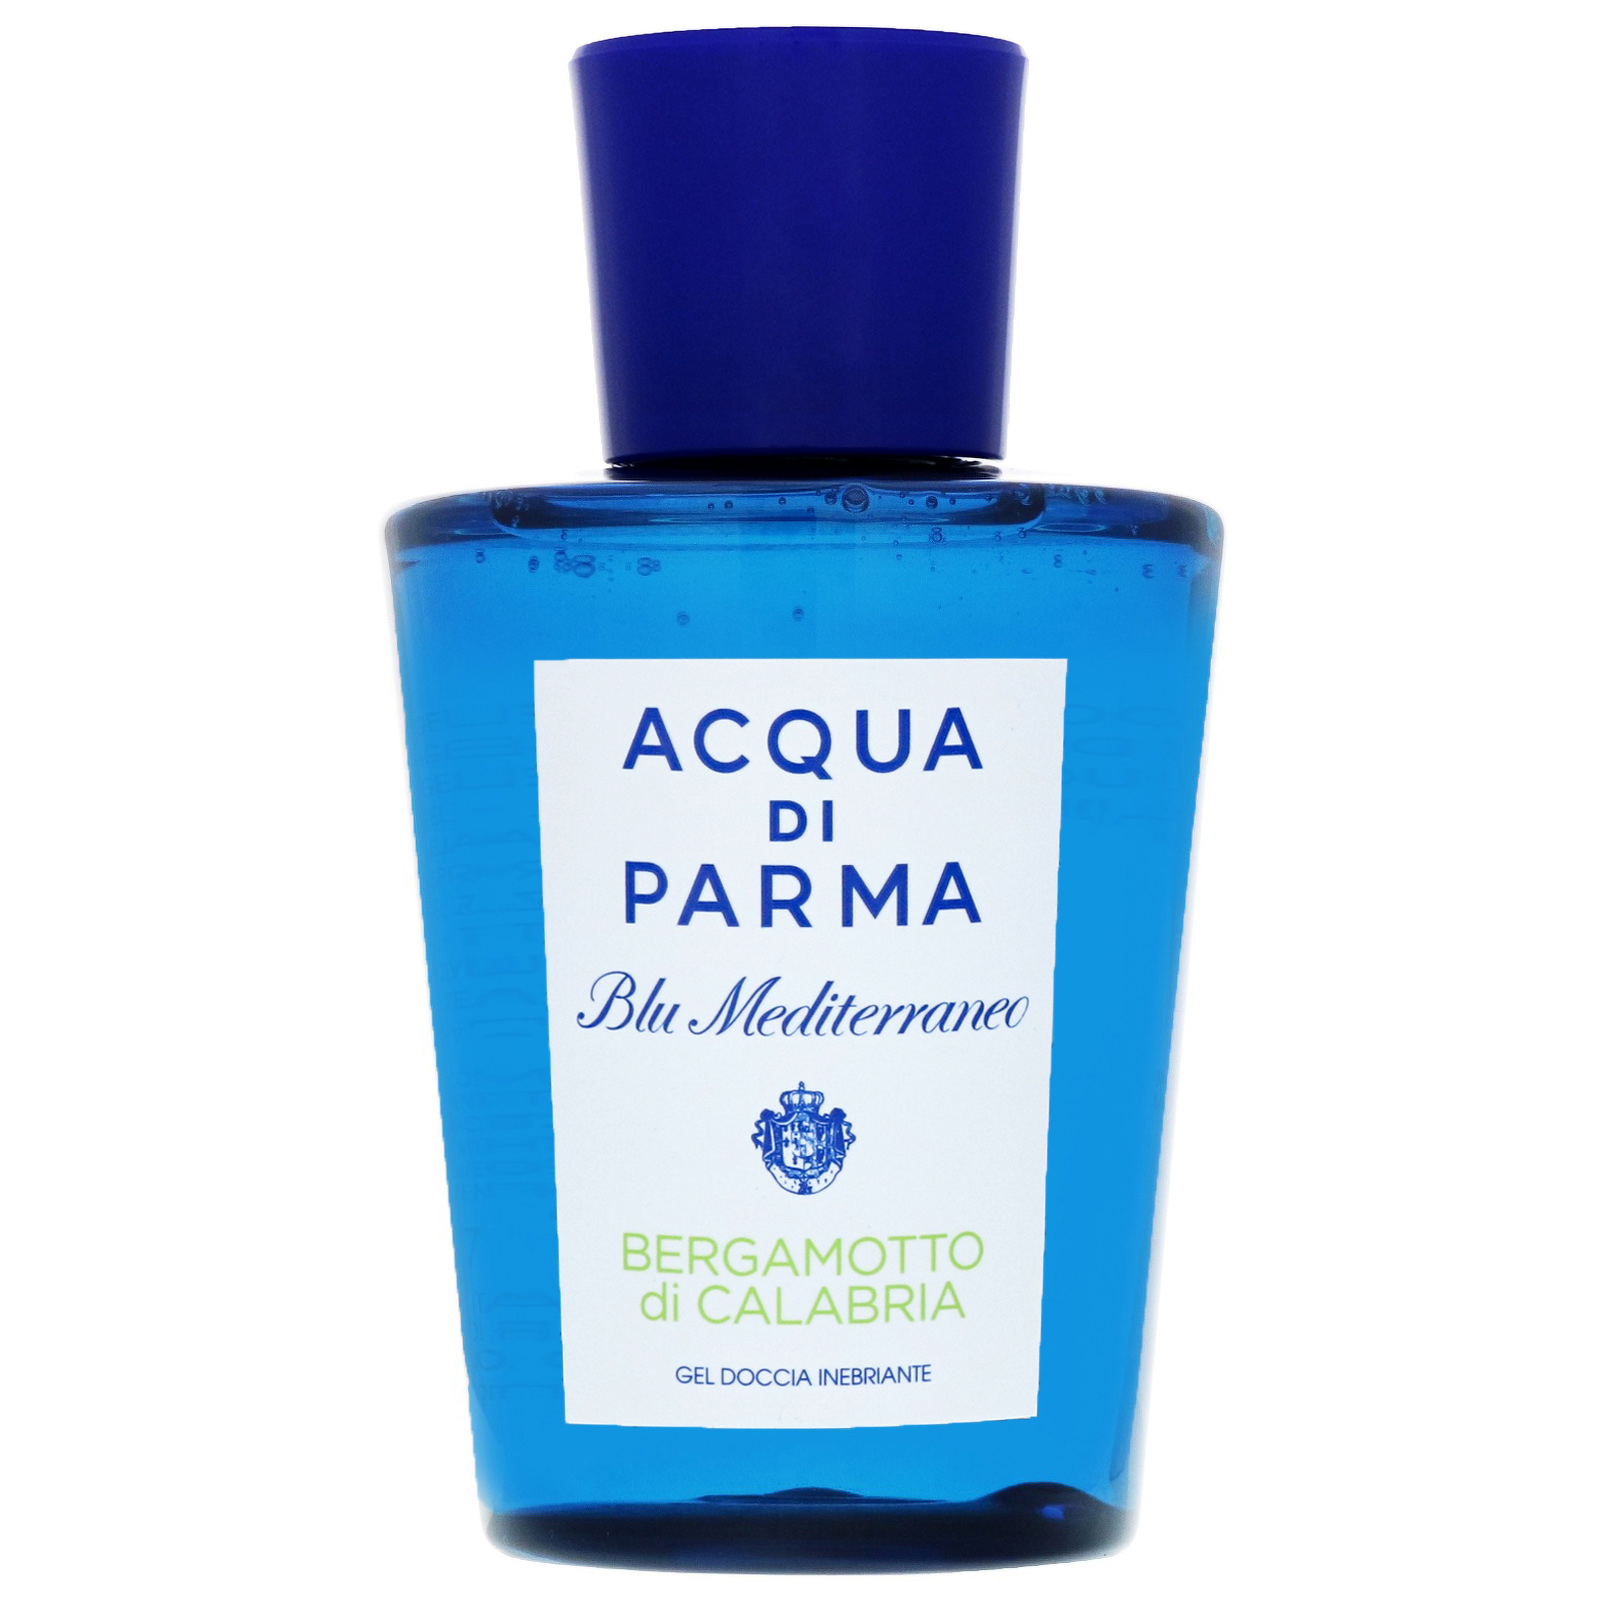 Acqua Di Parma Blu Mediterraneo - Bergamotto Di Calabria Intoxicating Shower Gel 200ml